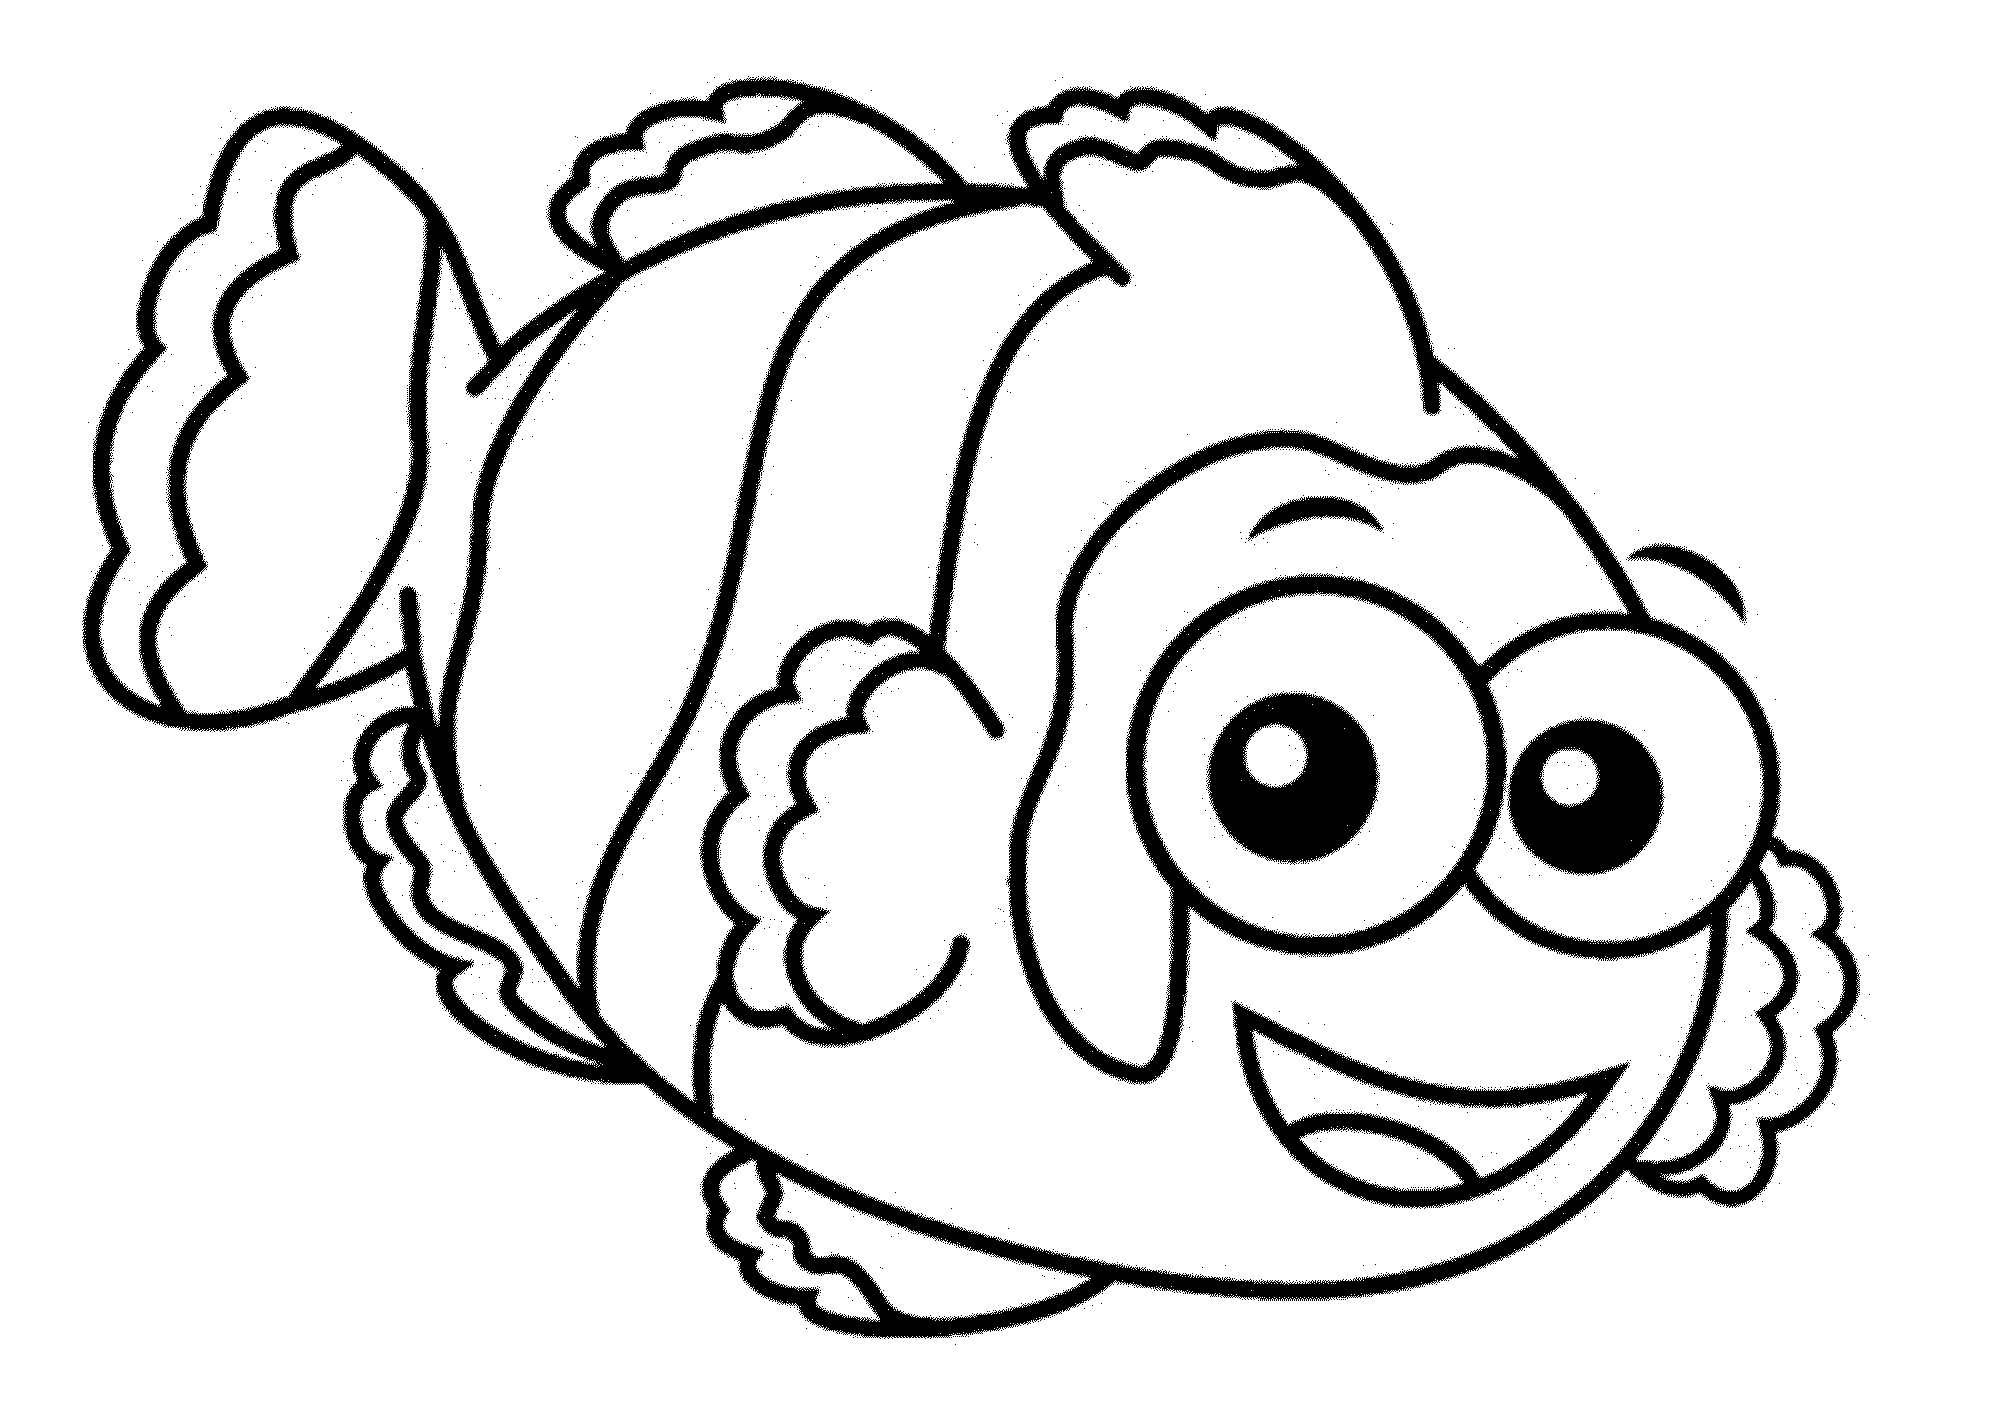 kids pictures of fish simple fish coloring pages download and print for free kids pictures of fish